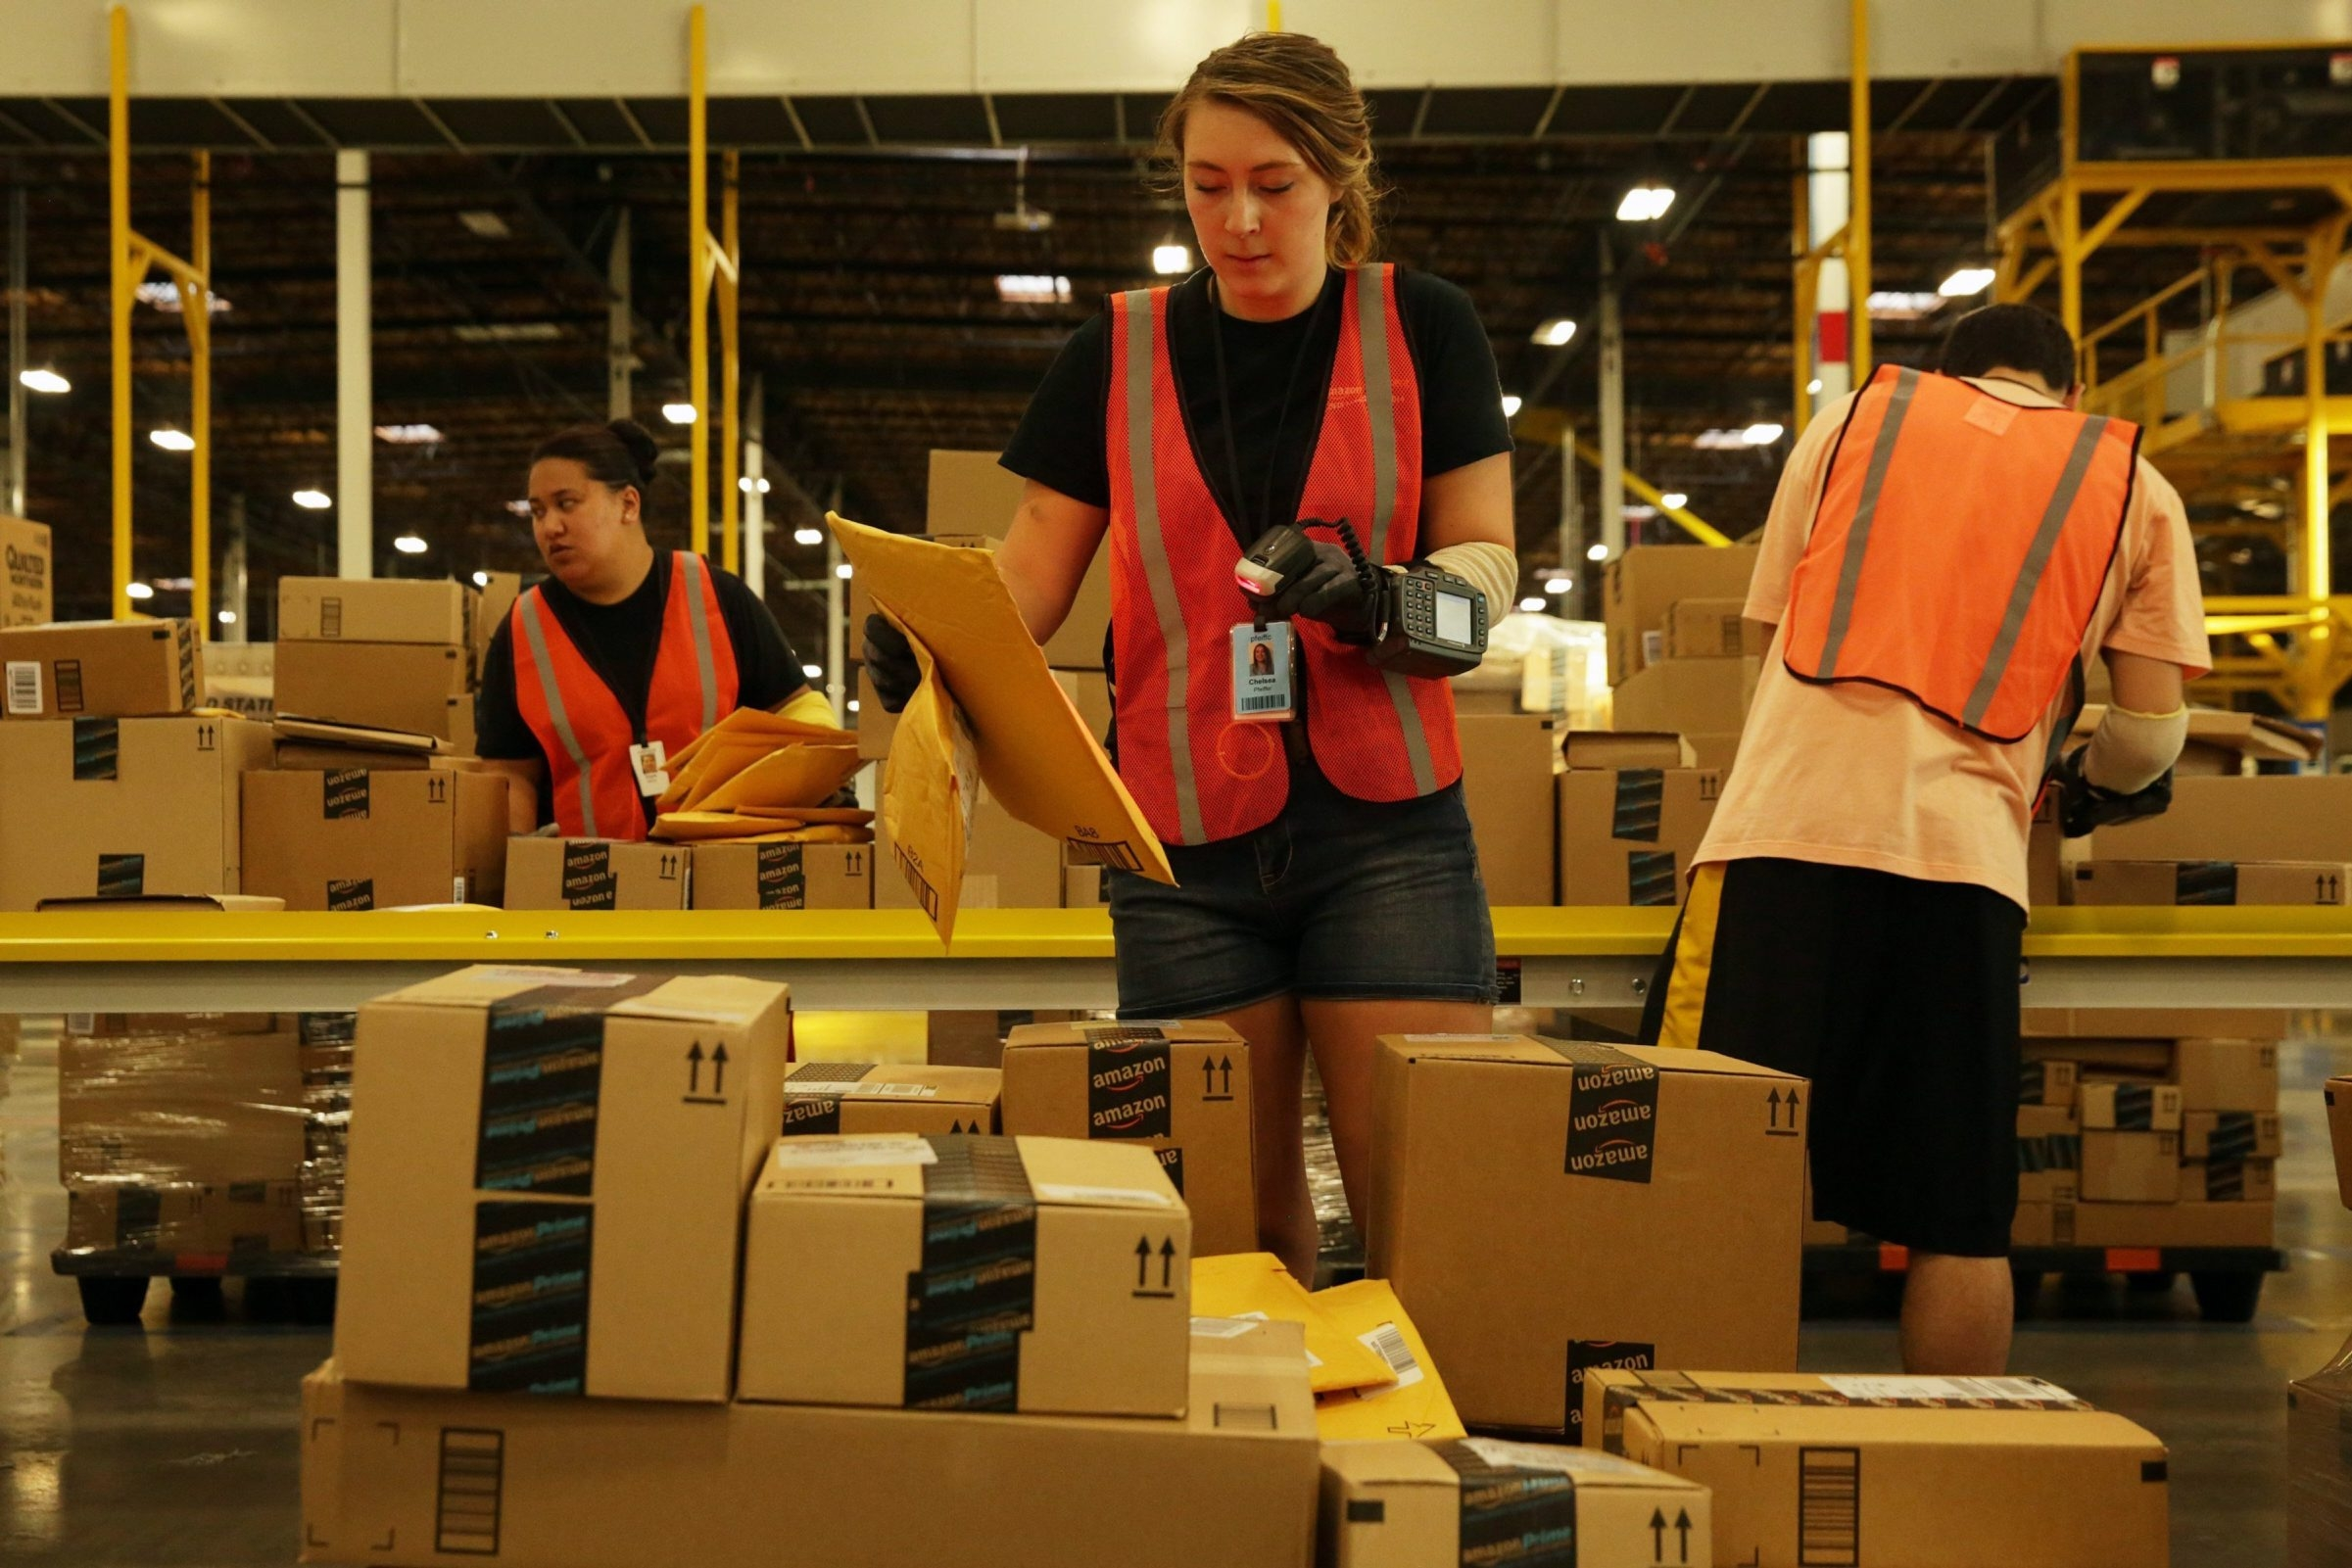 """Chelsea Pfeiffer scans items at Amazon's new sortation center in Kent, Wash. """"Tens of thousands"""" of packages will go through the facility. By the end of the year, Amazon will have more than 15 centers in the U.S."""